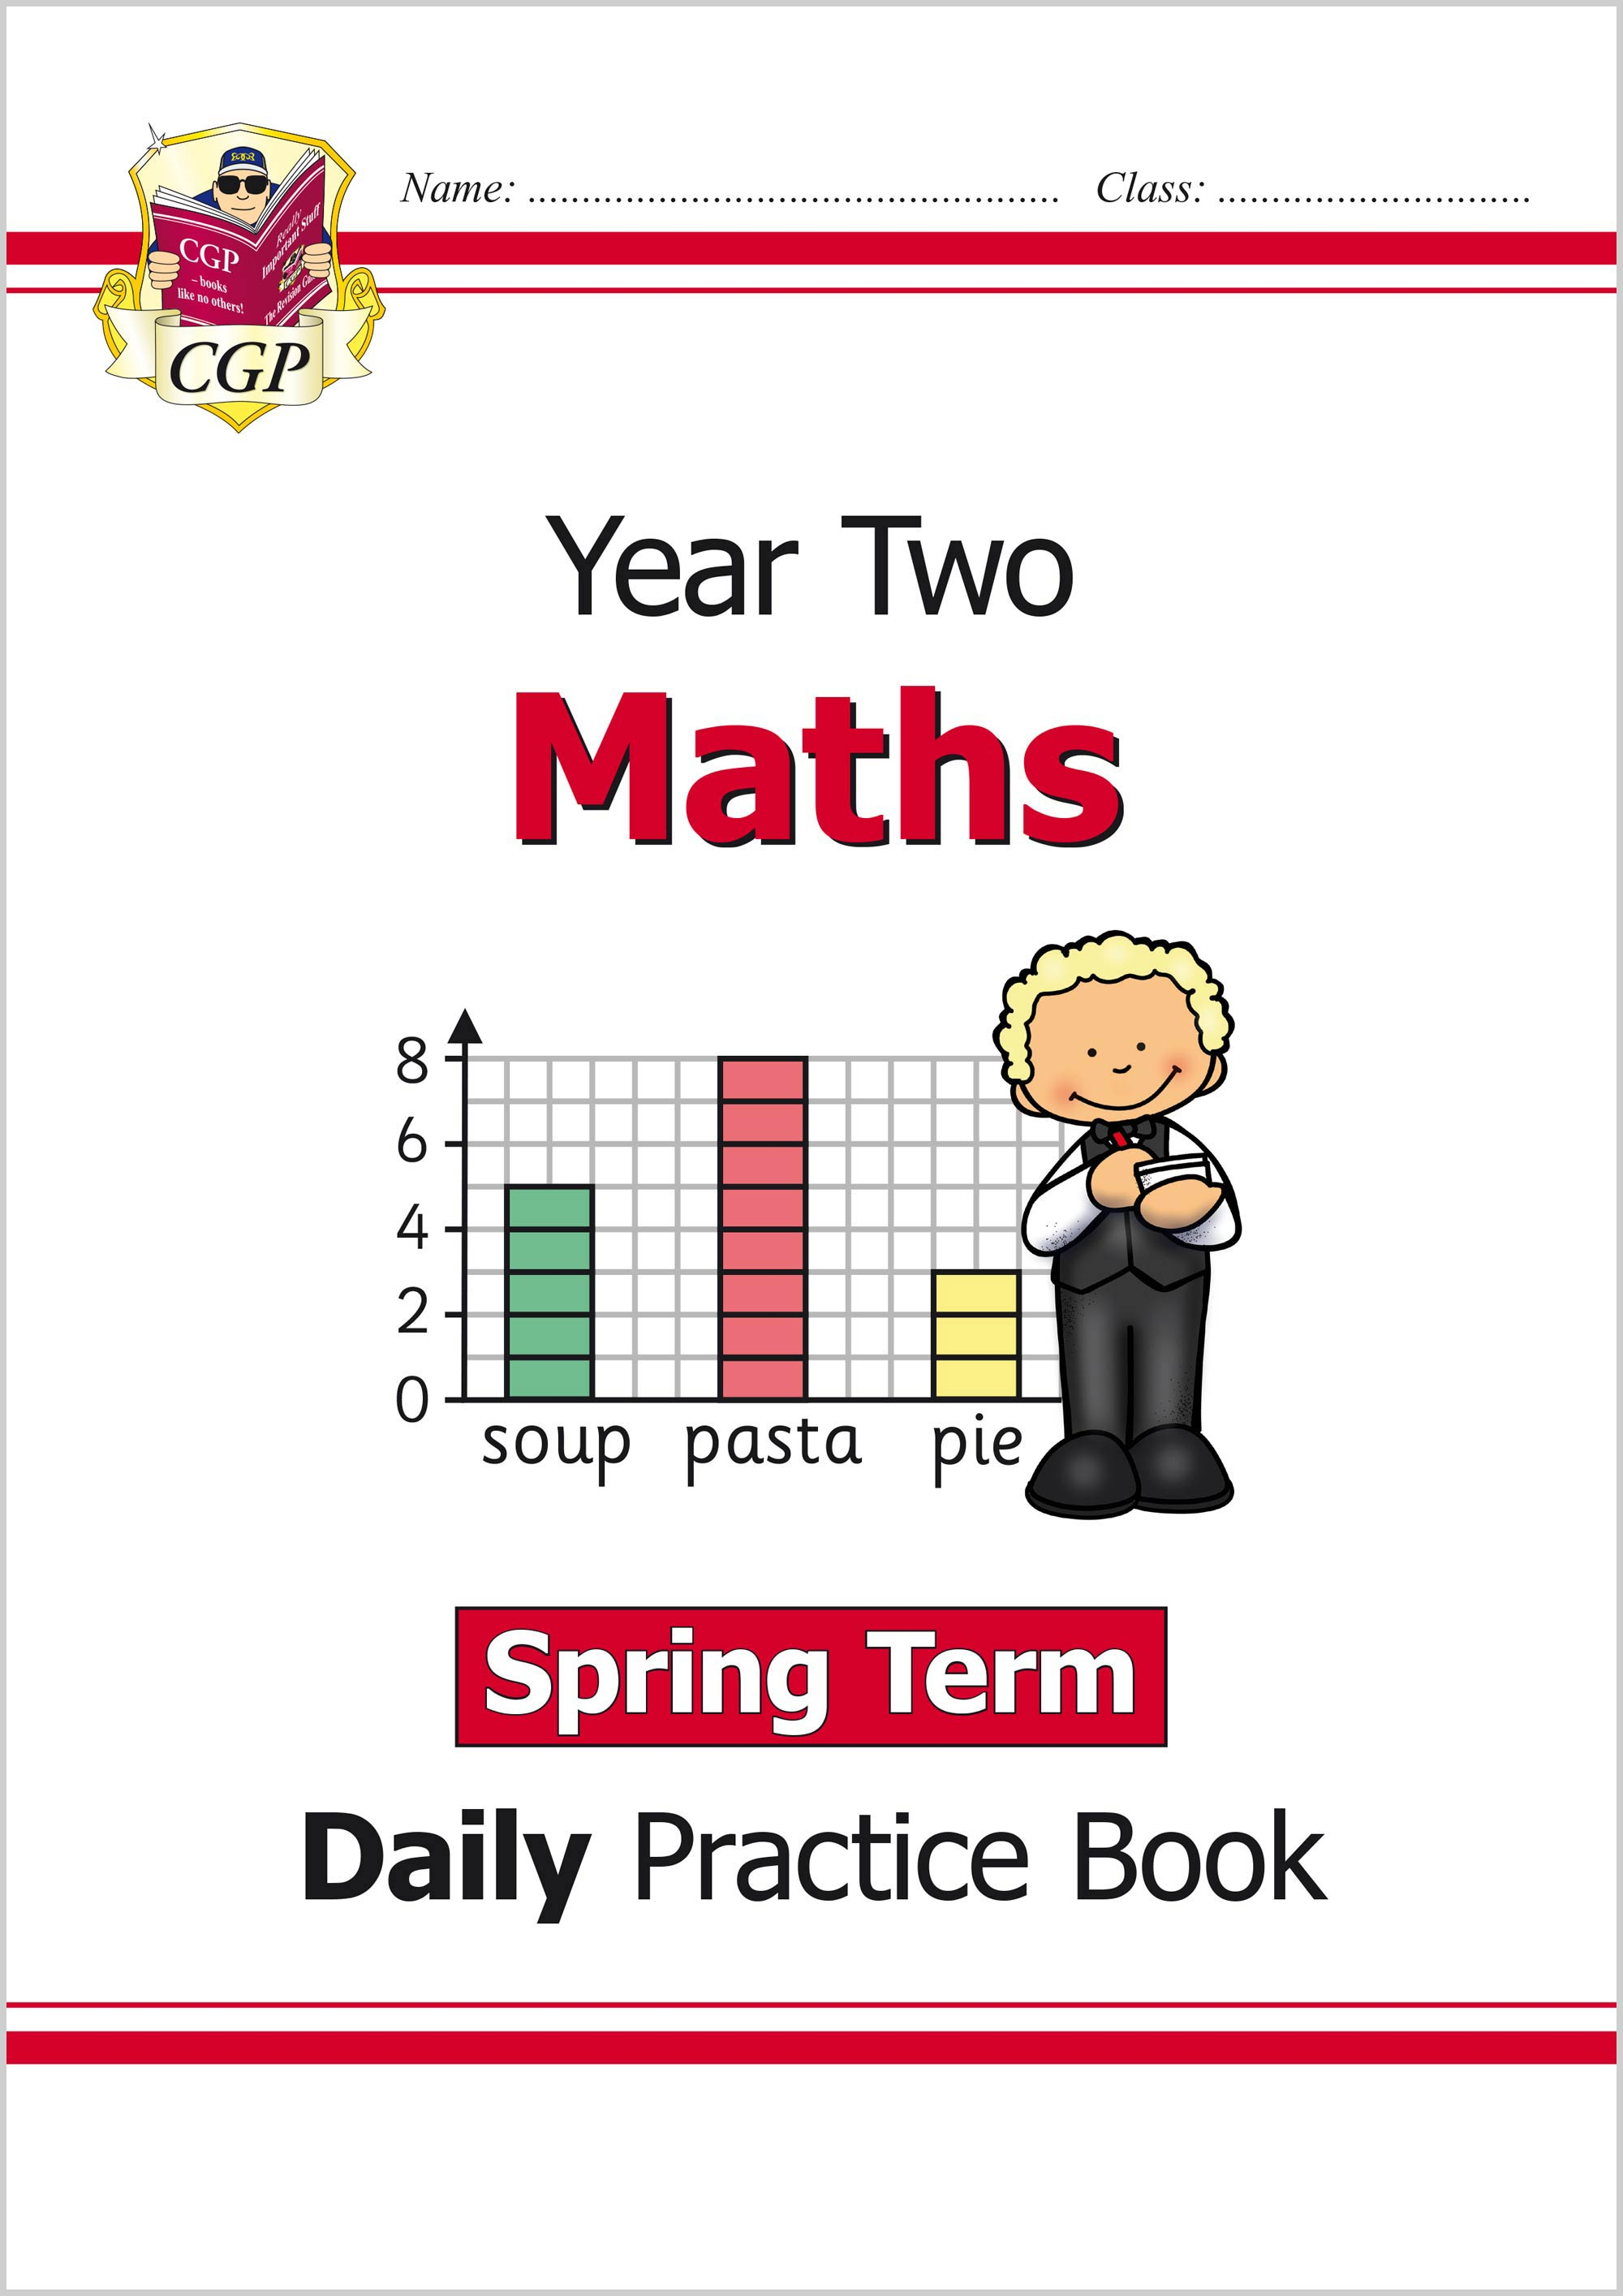 M2WSP11 - New KS1 Maths Daily Practice Book: Year 2 - Spring Term